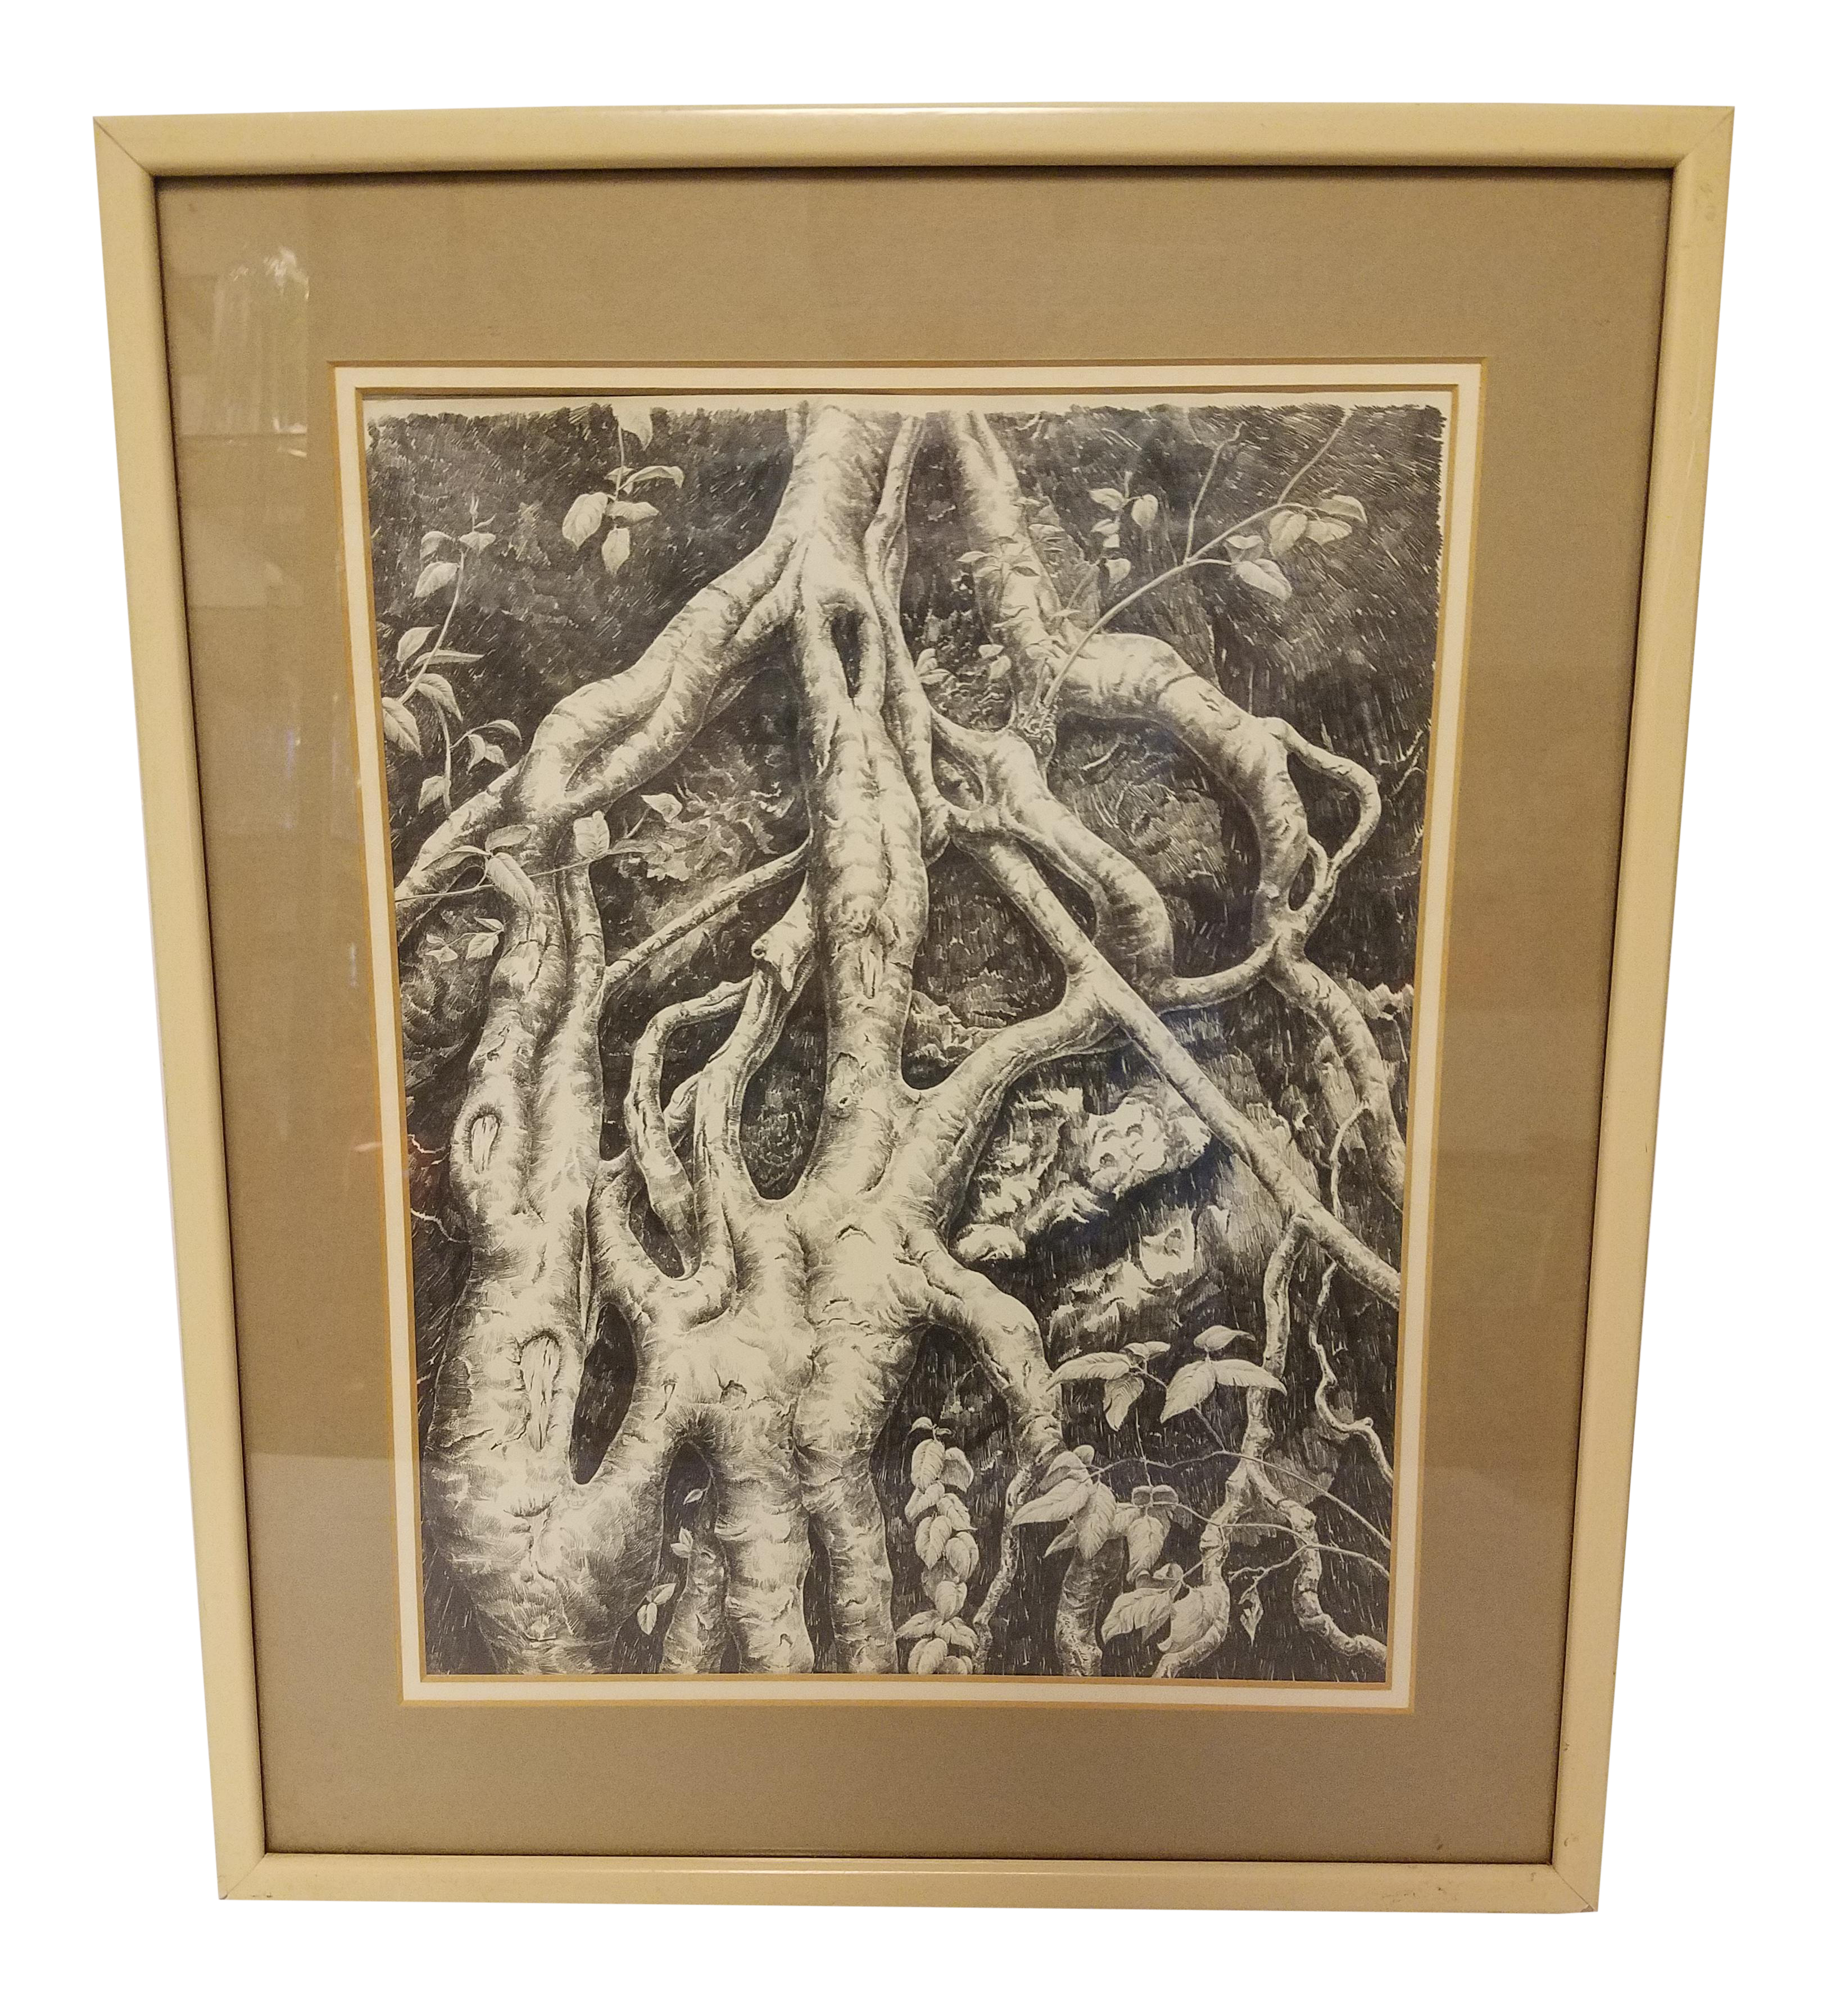 Drawing candles graphite. Tree root system chairish